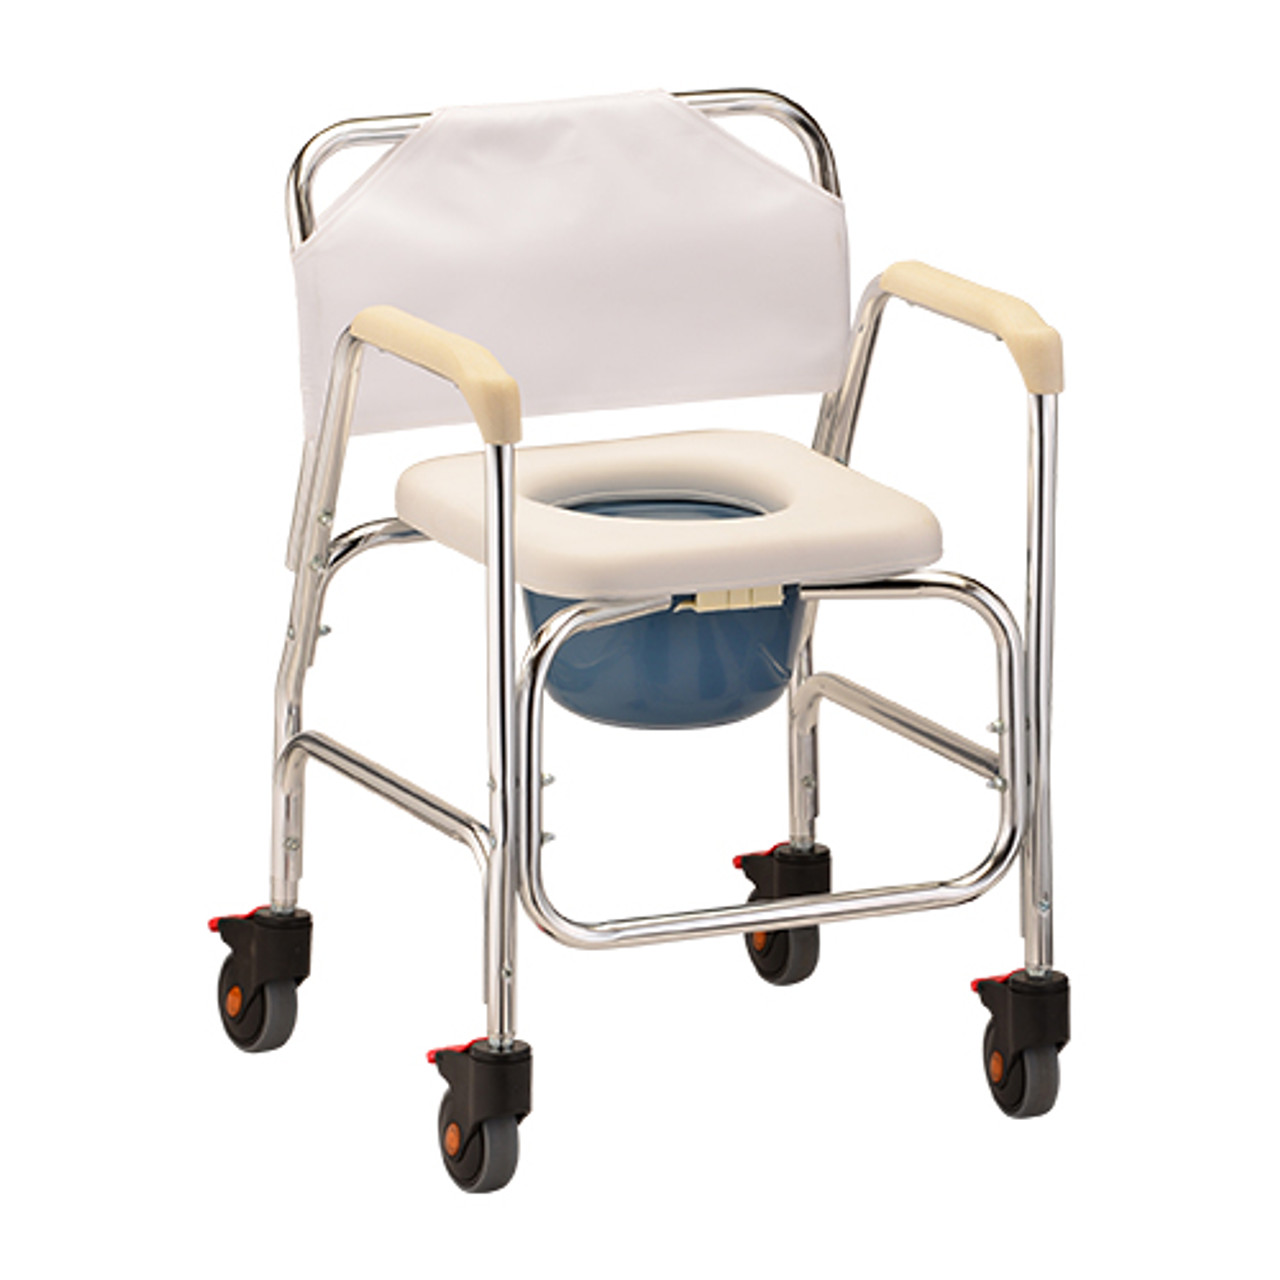 Rolling Shower Chair and Commode